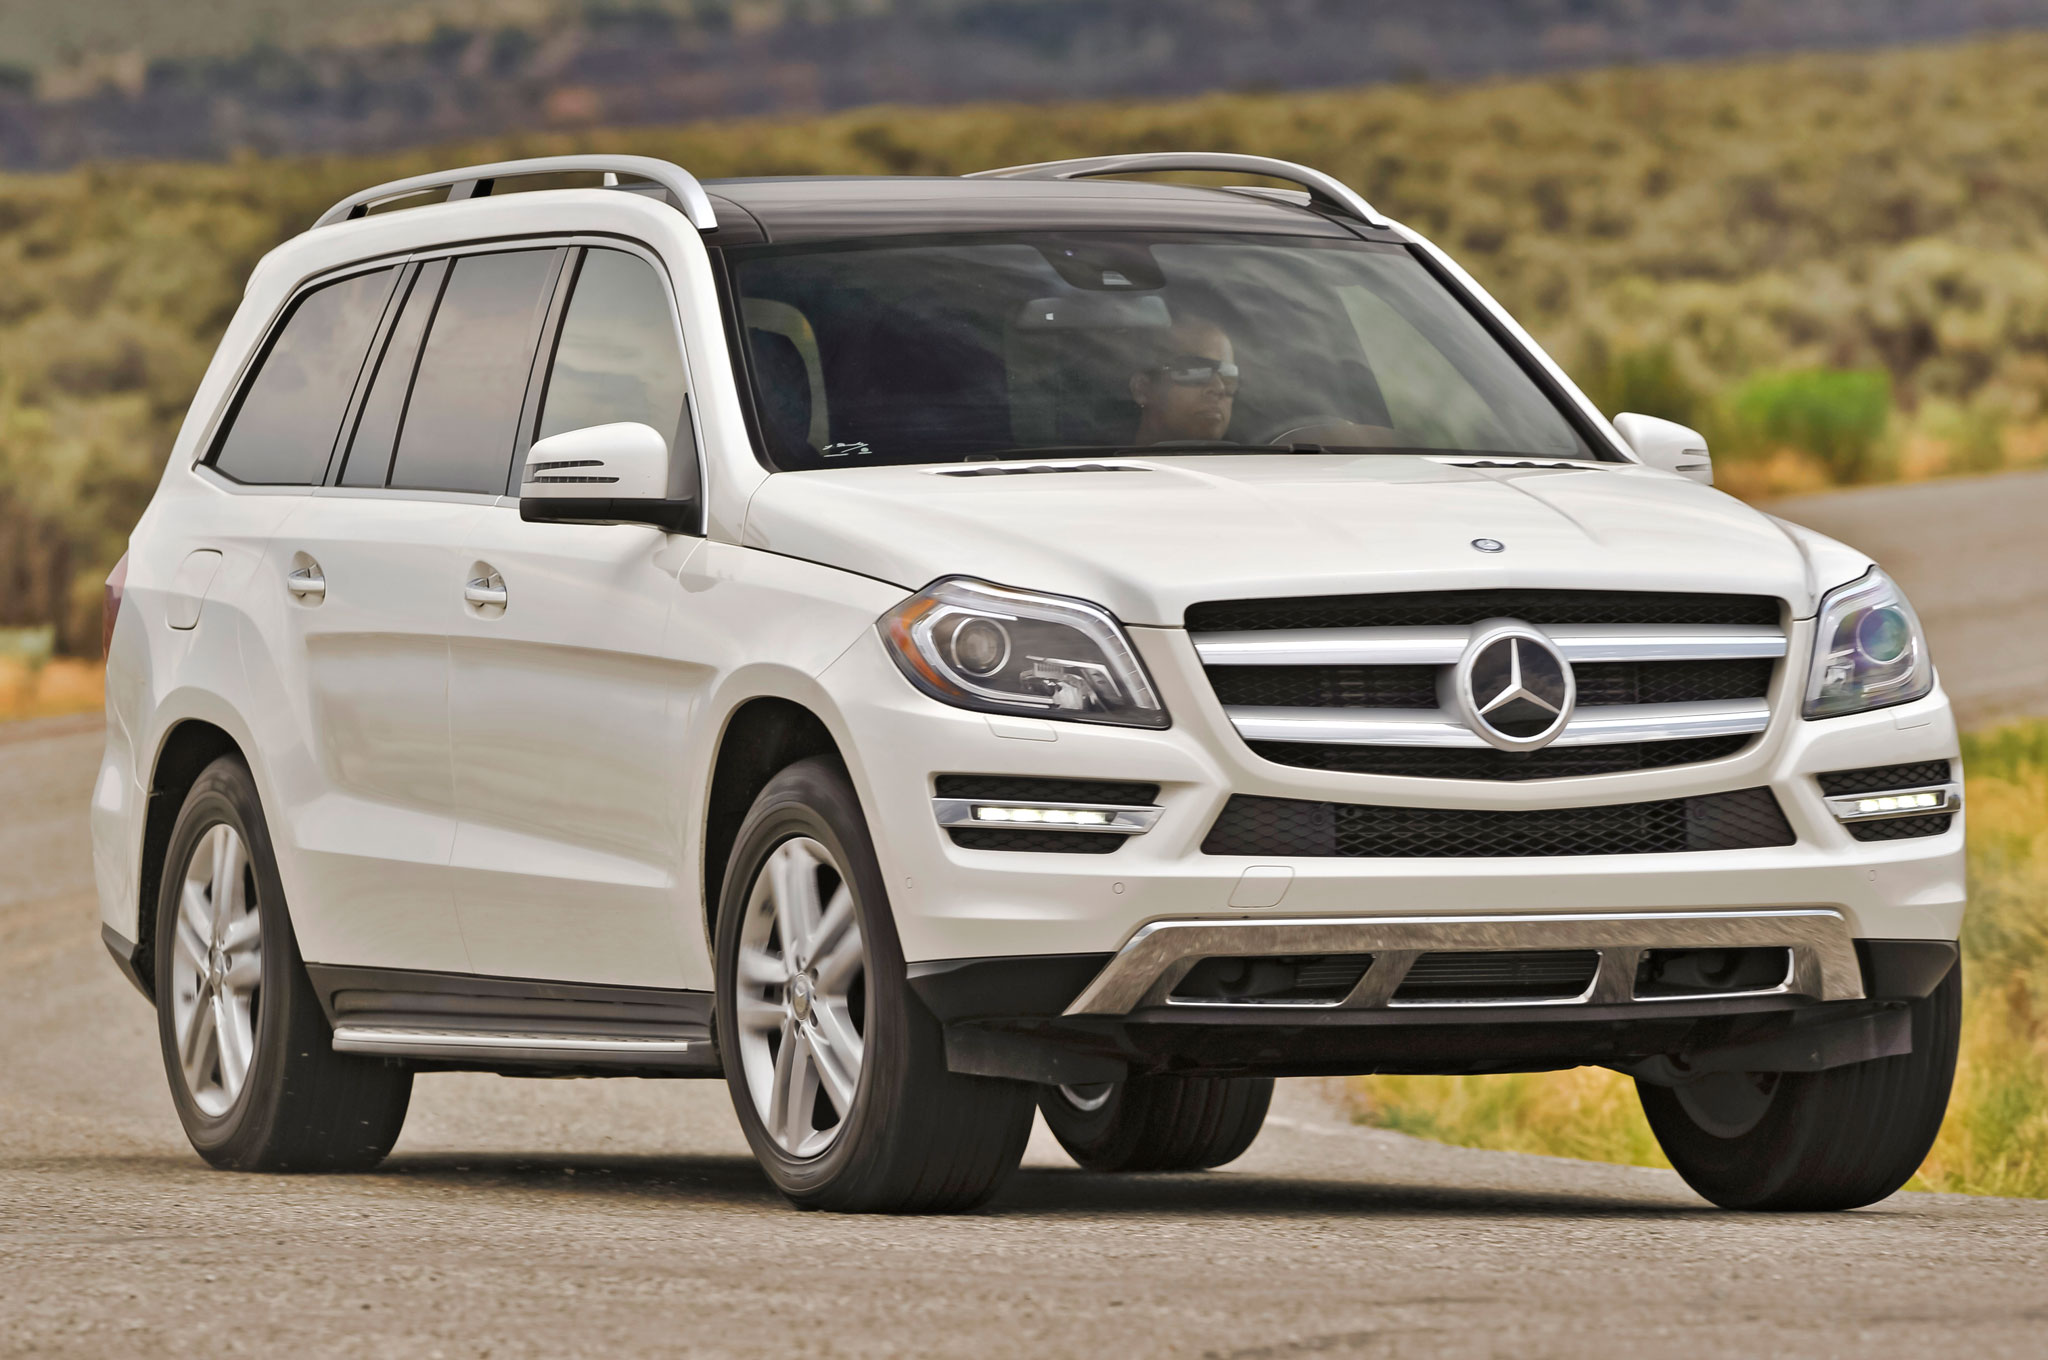 Our Cars: 2013 Mercedes Benz GL350 Diesel Is Smooooth